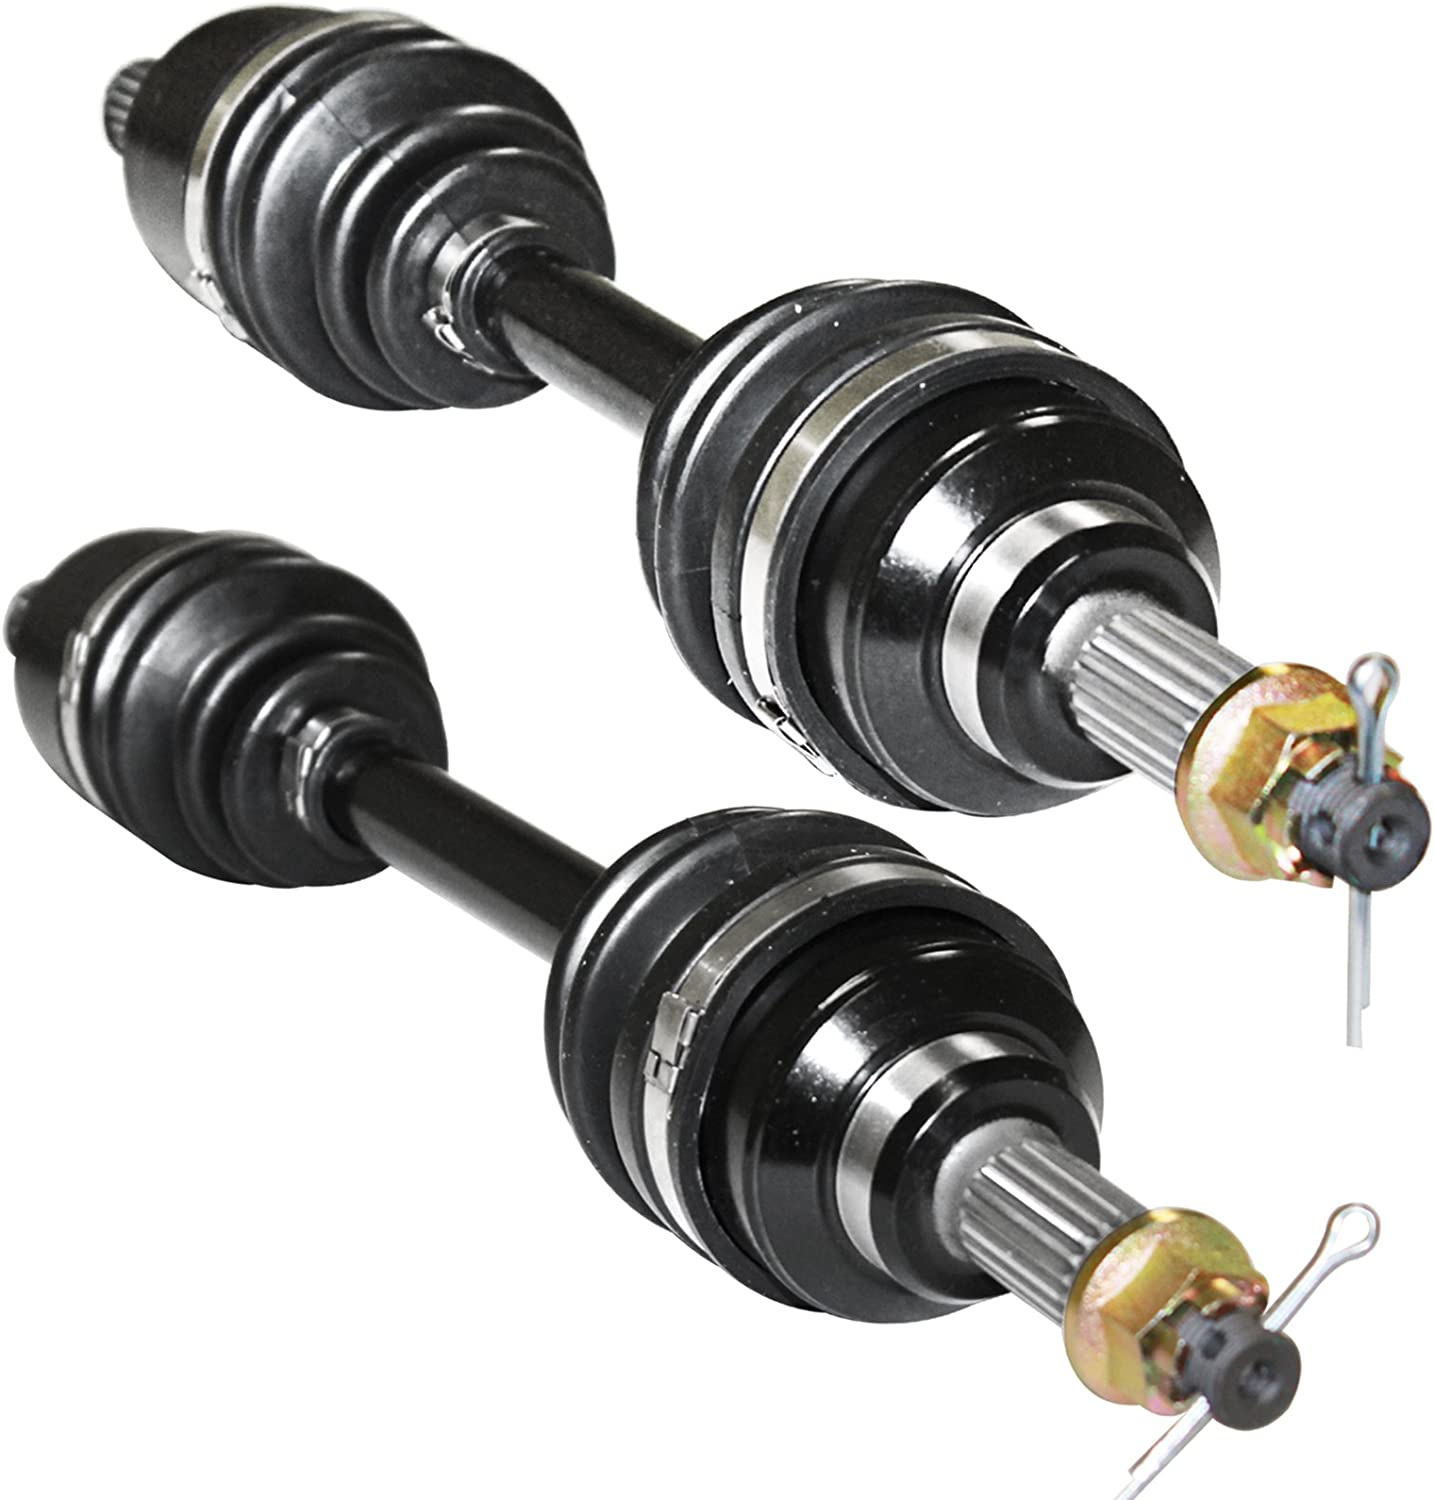 Front Right CV Axle 1996 Honda Foreman 400 4x4 ATV